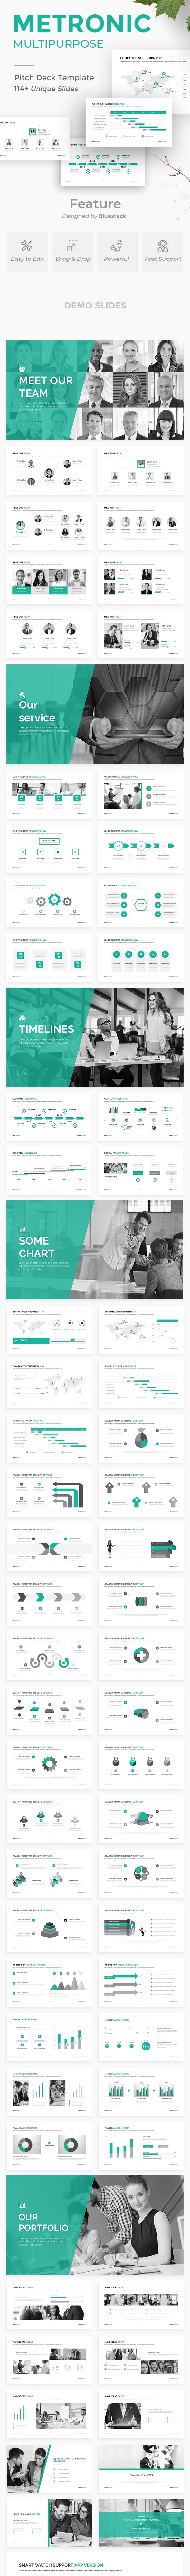 Metronic Business Proposal Powerpoint Template - Business PowerPoint Templates